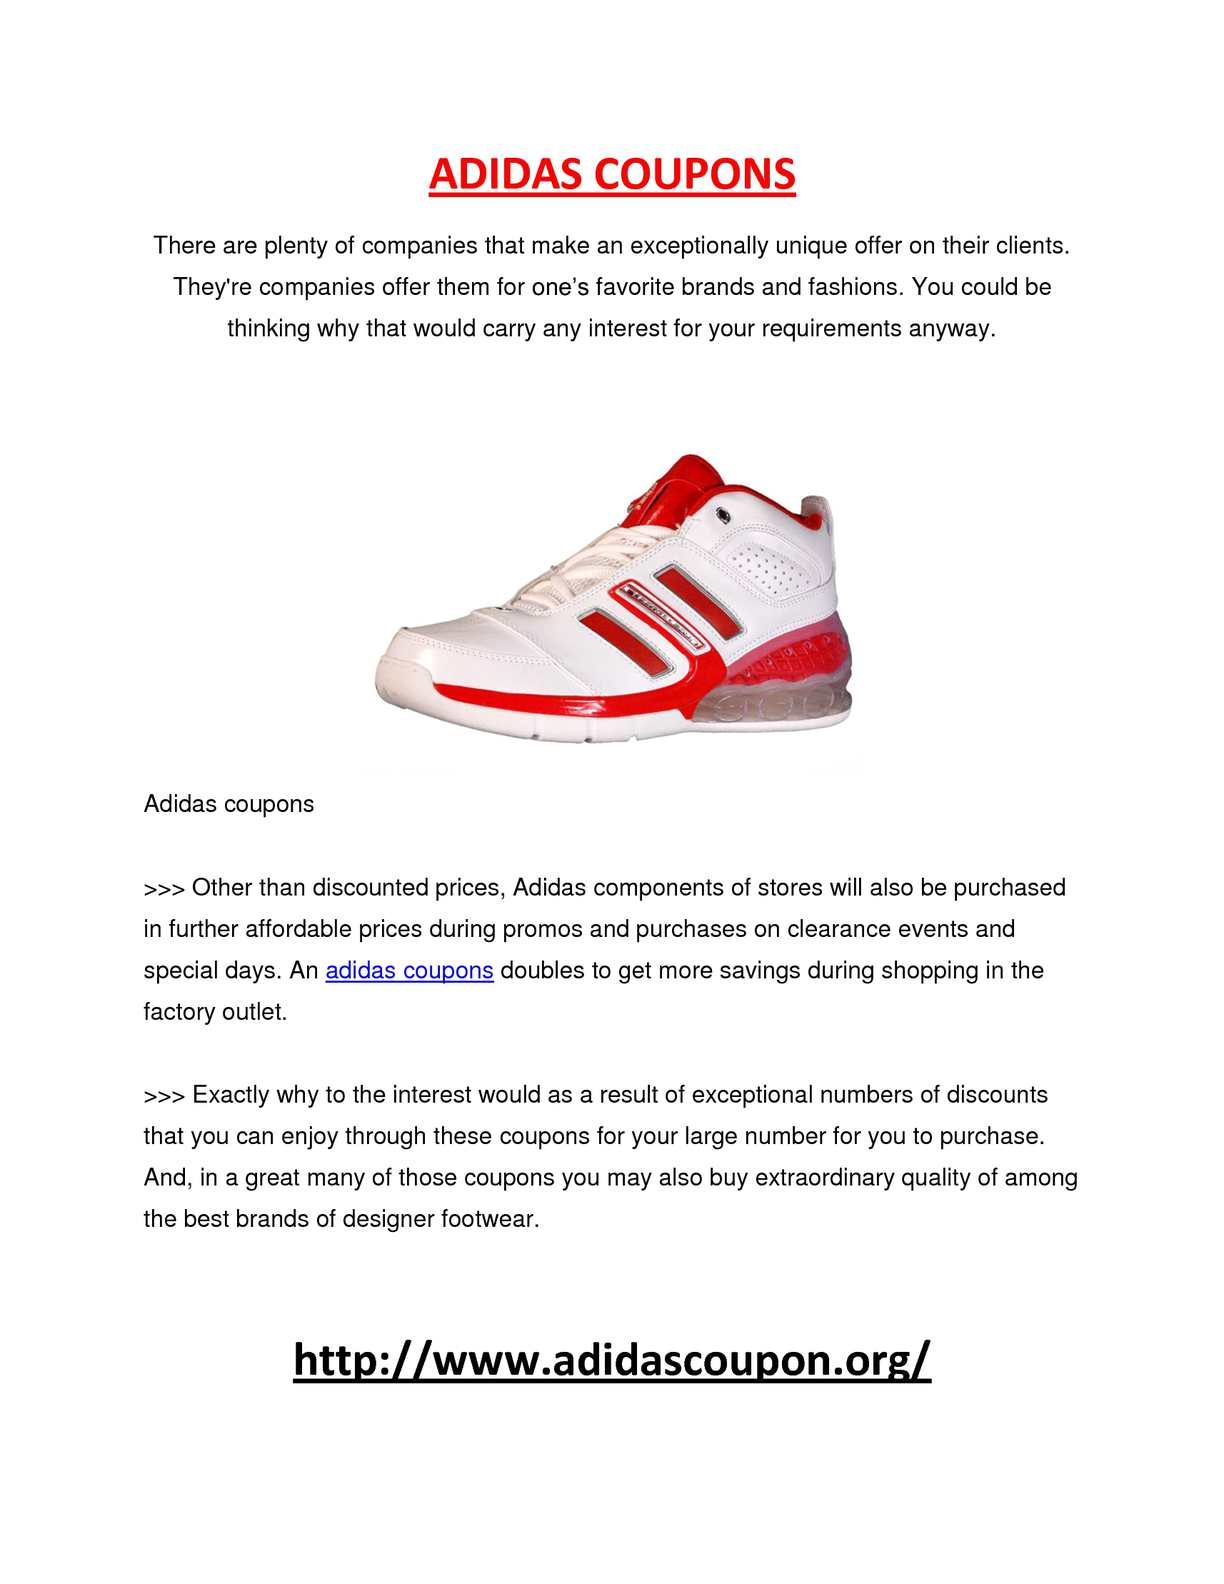 Elements Of adidas coupons